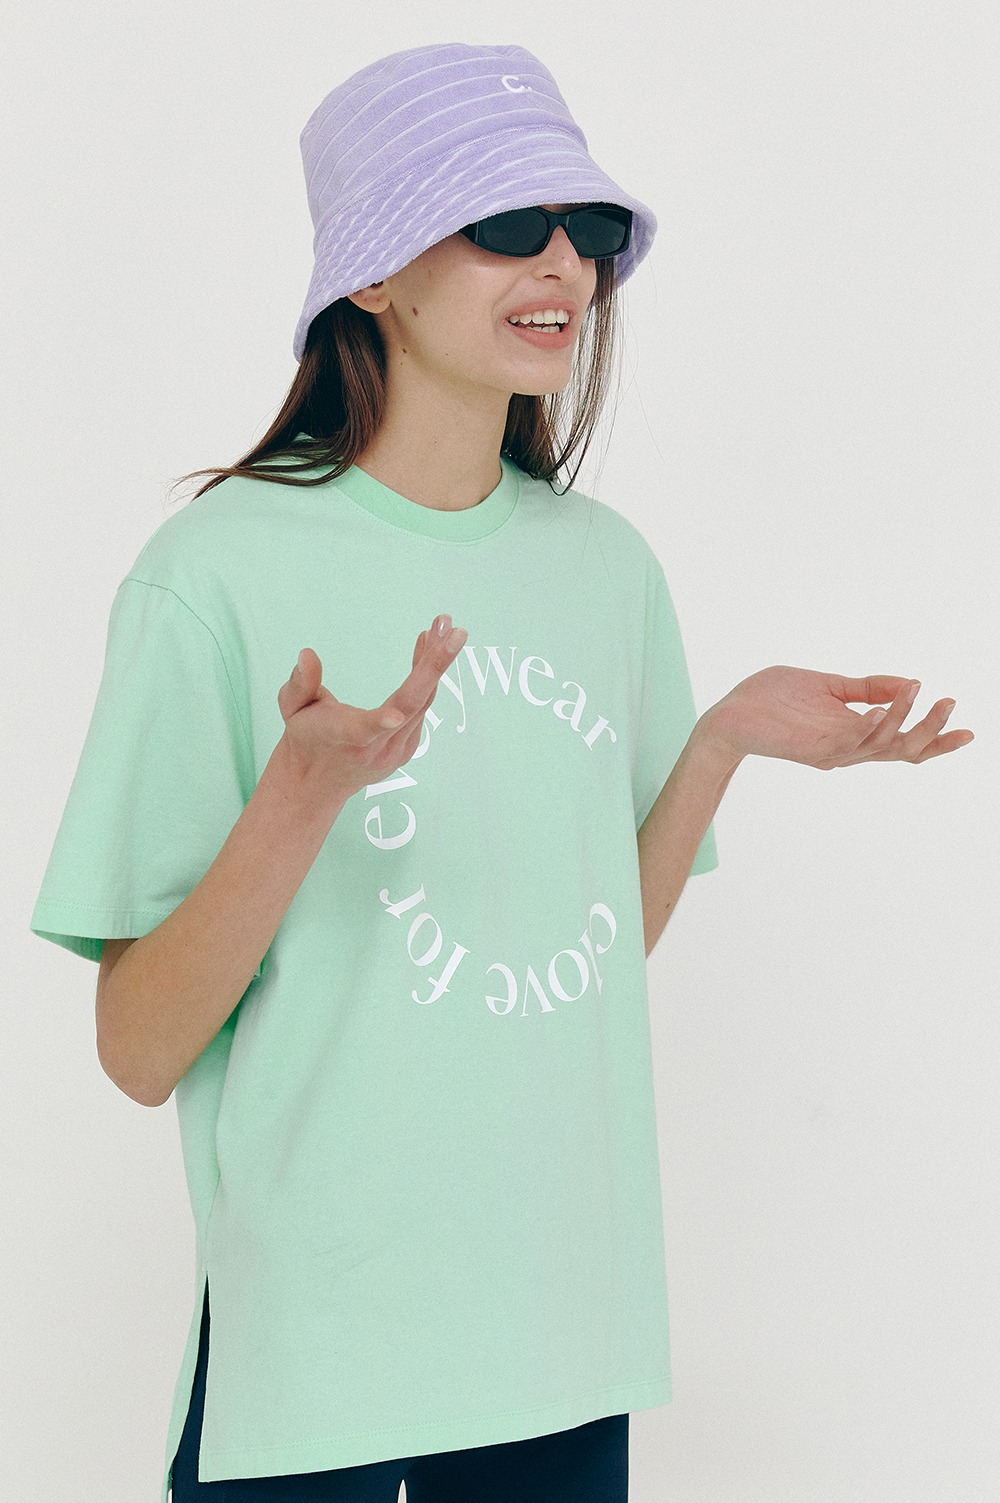 clove - [5/14(금) 예약배송][SS21 clove] Everywear T-Shirt Mint